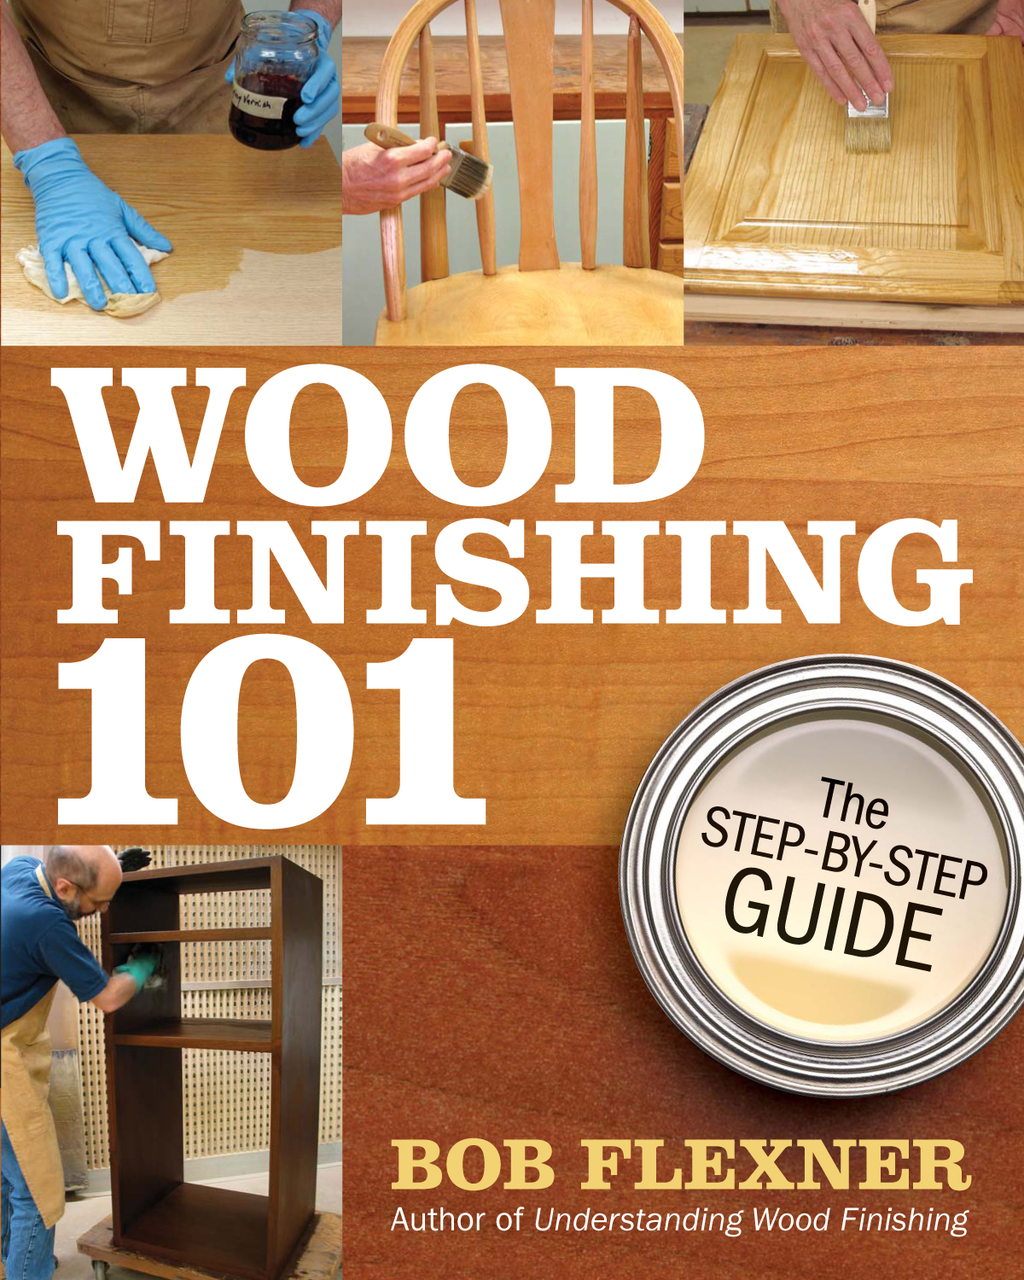 Wood Finishing 101 The Step-by-Step Guide